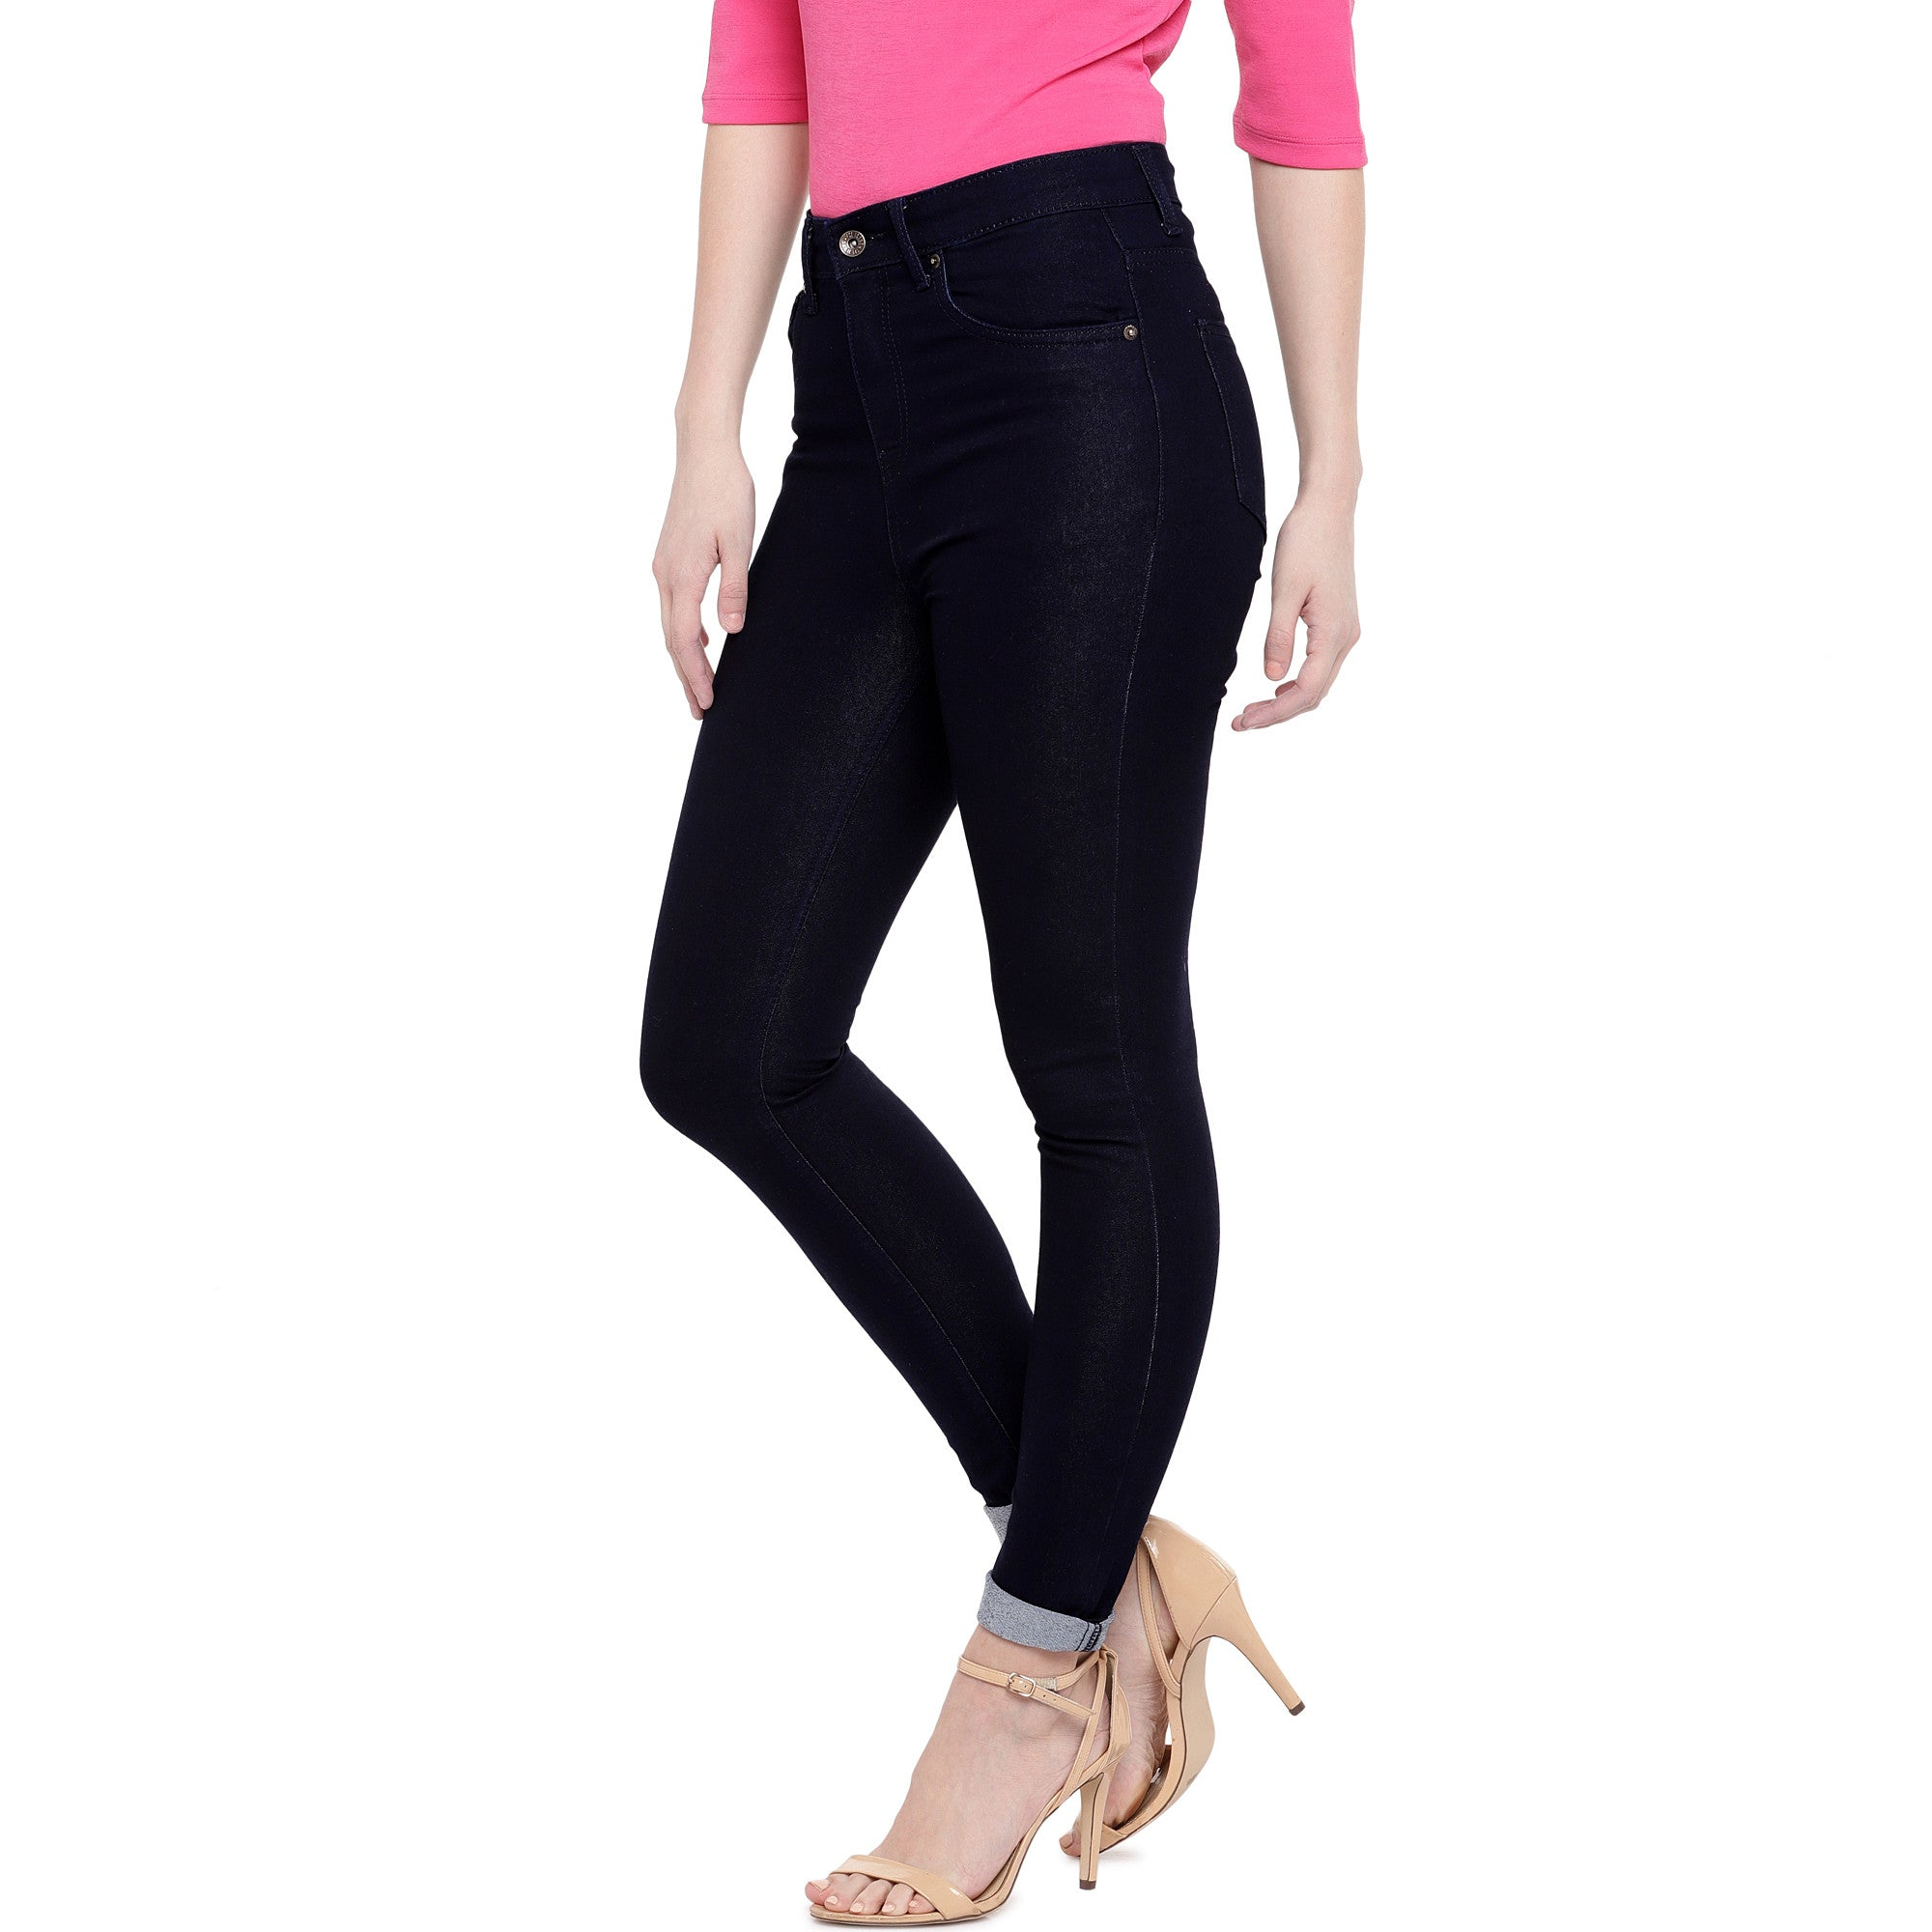 Black Skinny Fit High-Rise Clean Look Jeans-2